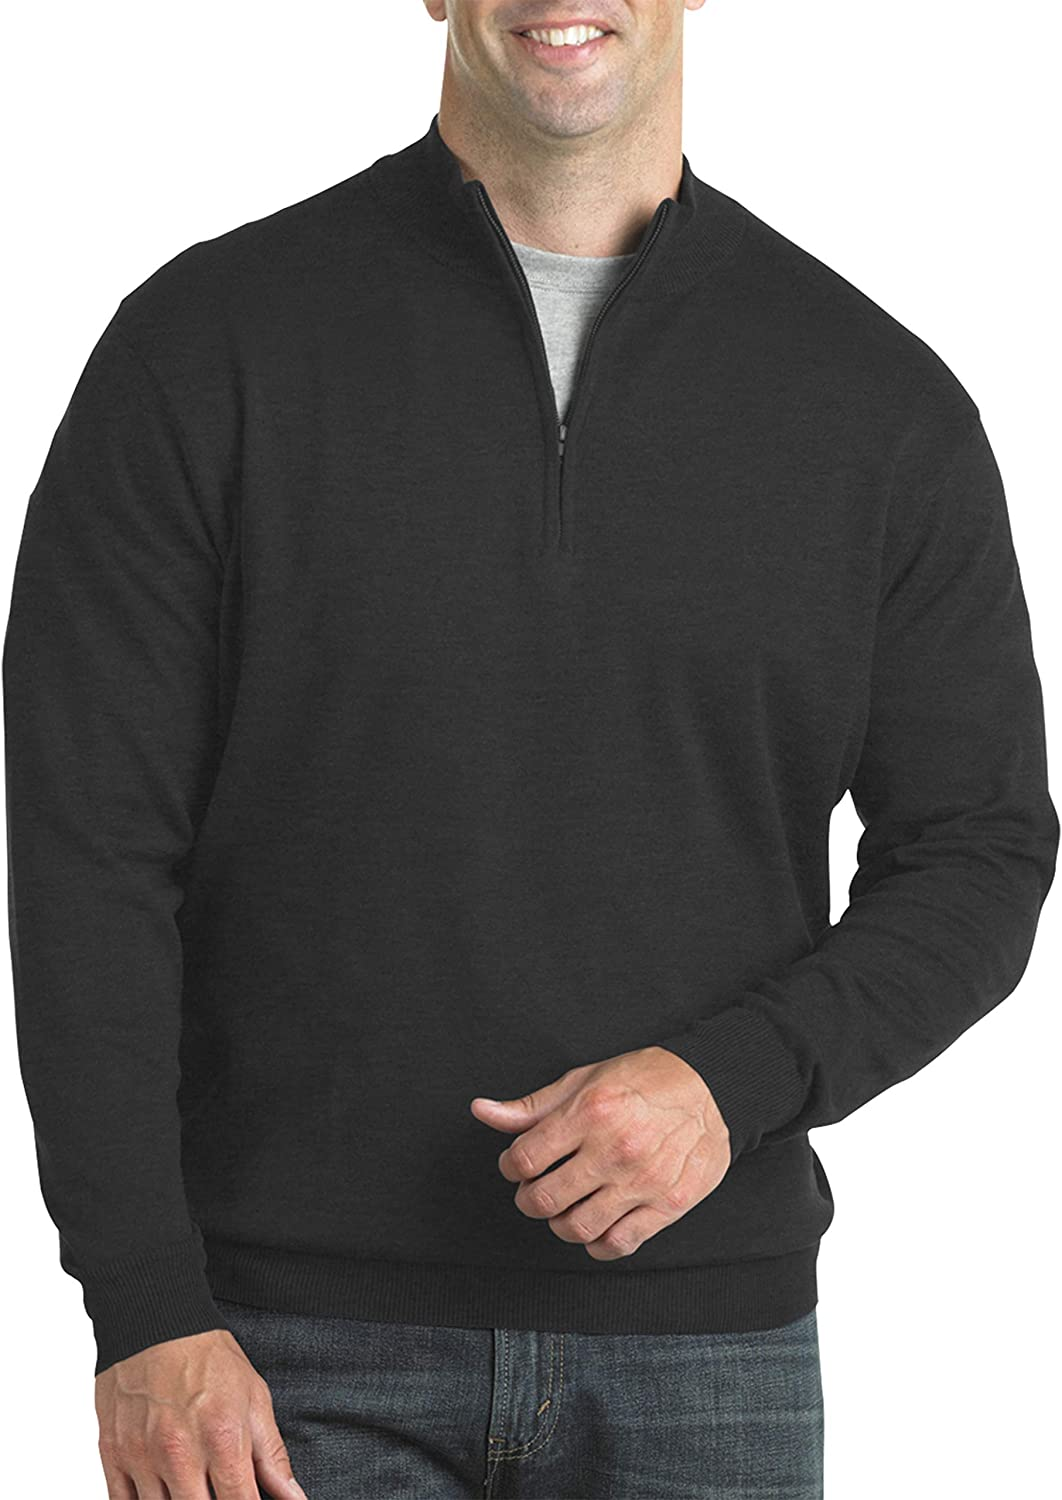 Harbor Bay High order by DXL Big Fees free Tall and Quarter-Zip Sweater Pullover